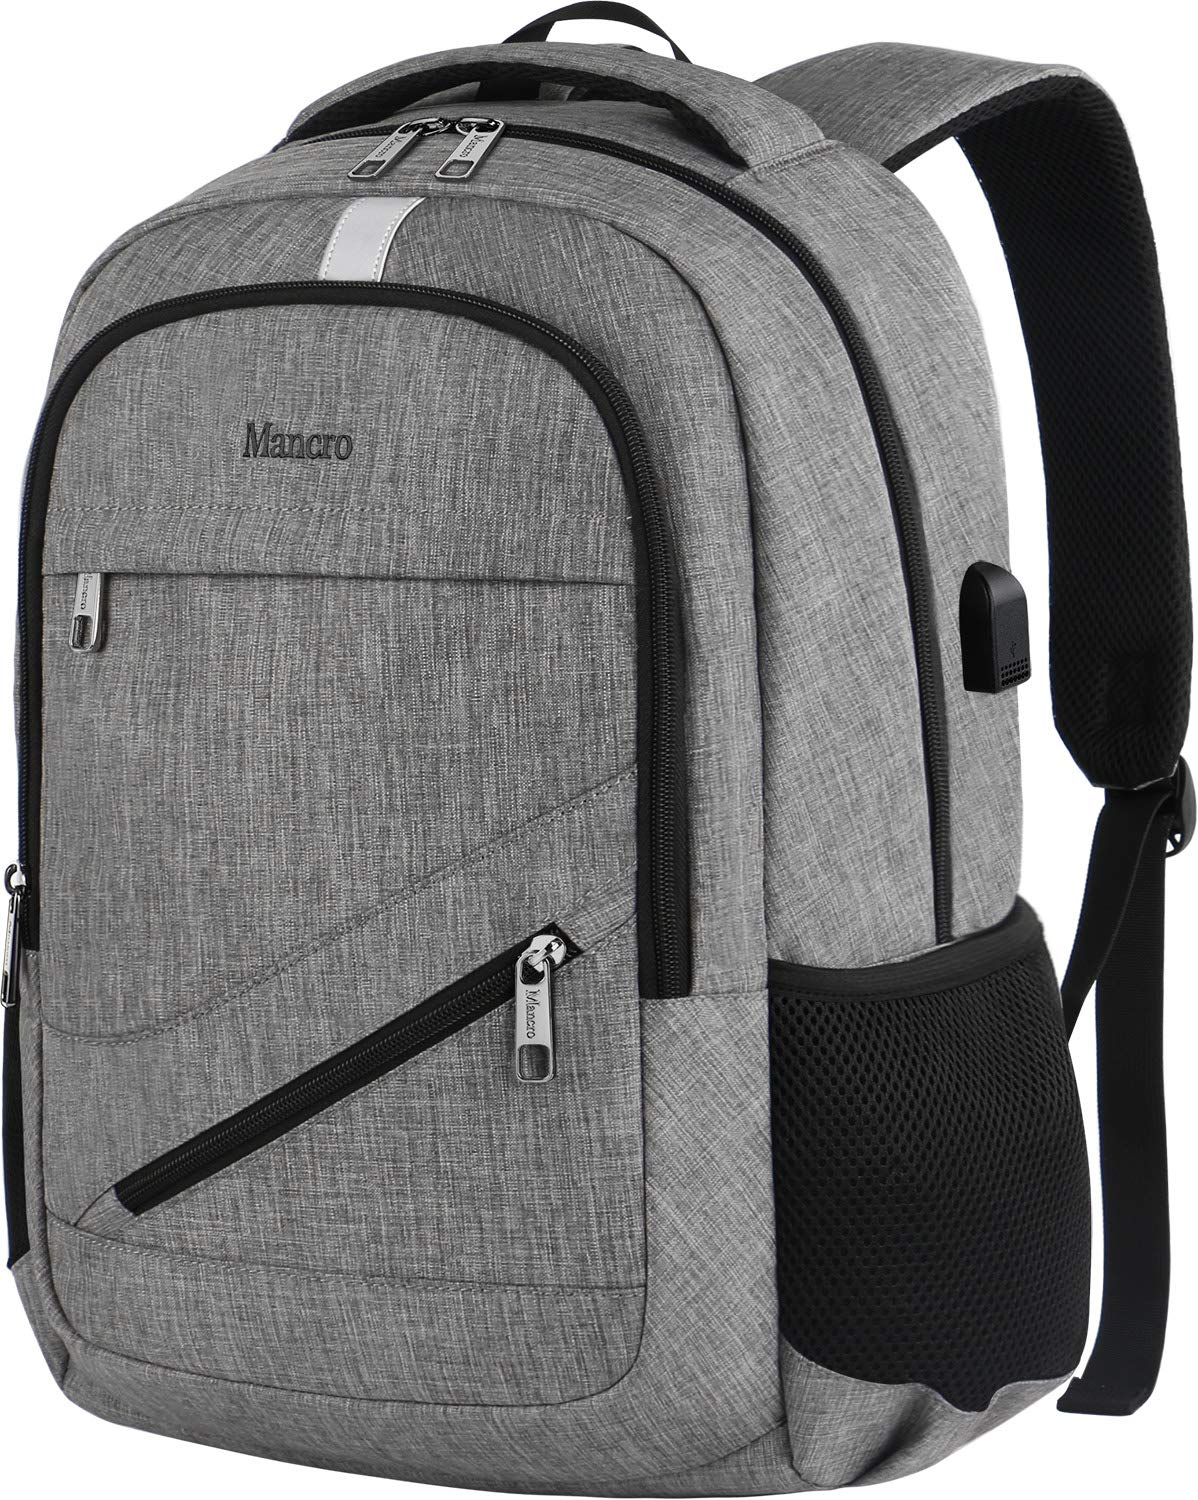 Mancro Anti Theft Business Laptop Backpack Fenix Toulouse Handball Notebook Protector For Men Black Travel Backpacks With Usb